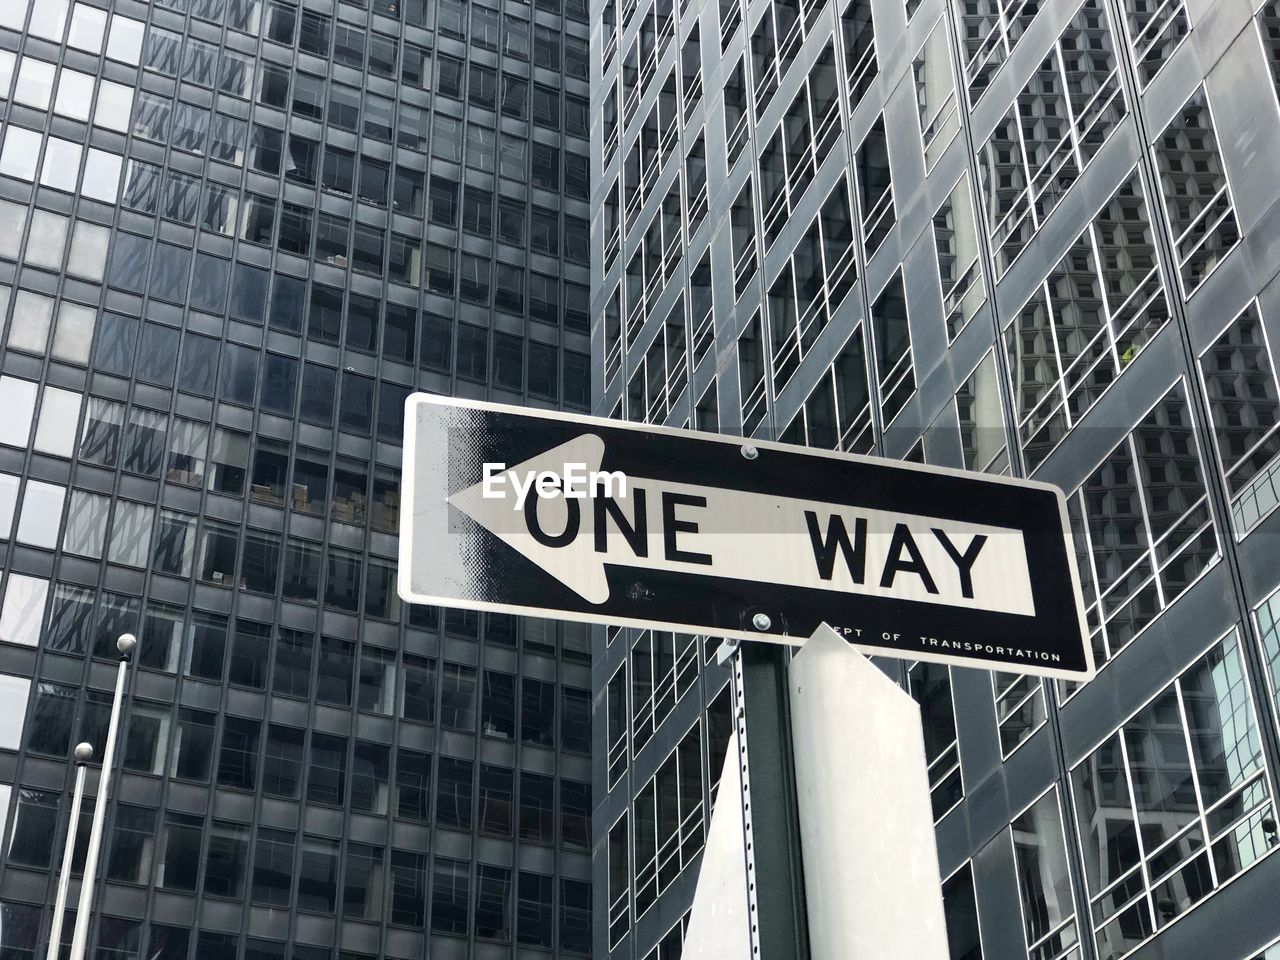 architecture, communication, built structure, building exterior, sign, one way, guidance, text, road sign, arrow symbol, directional sign, city, building, office, direction, office building exterior, western script, no people, low angle view, symbol, outdoors, skyscraper